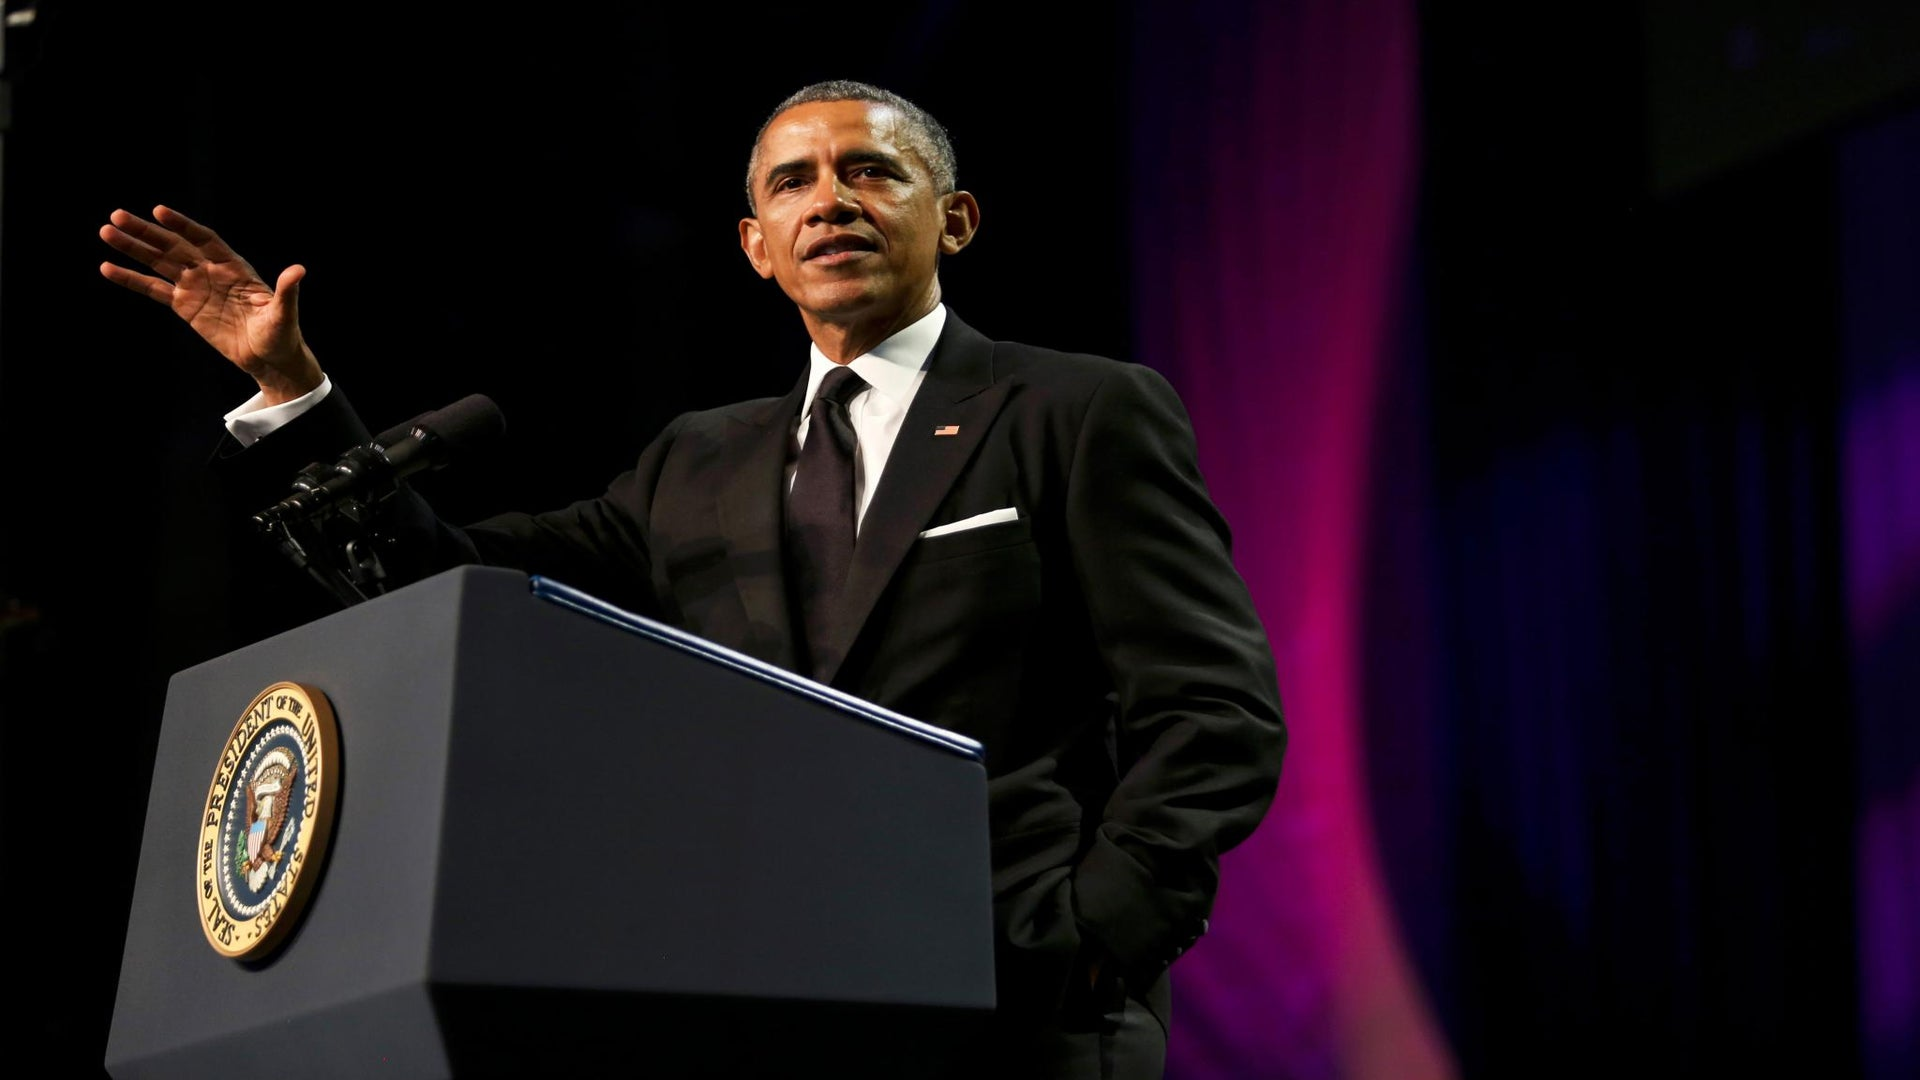 Obama Calls on Congress to Reduce 'Over-Testing' in Schools